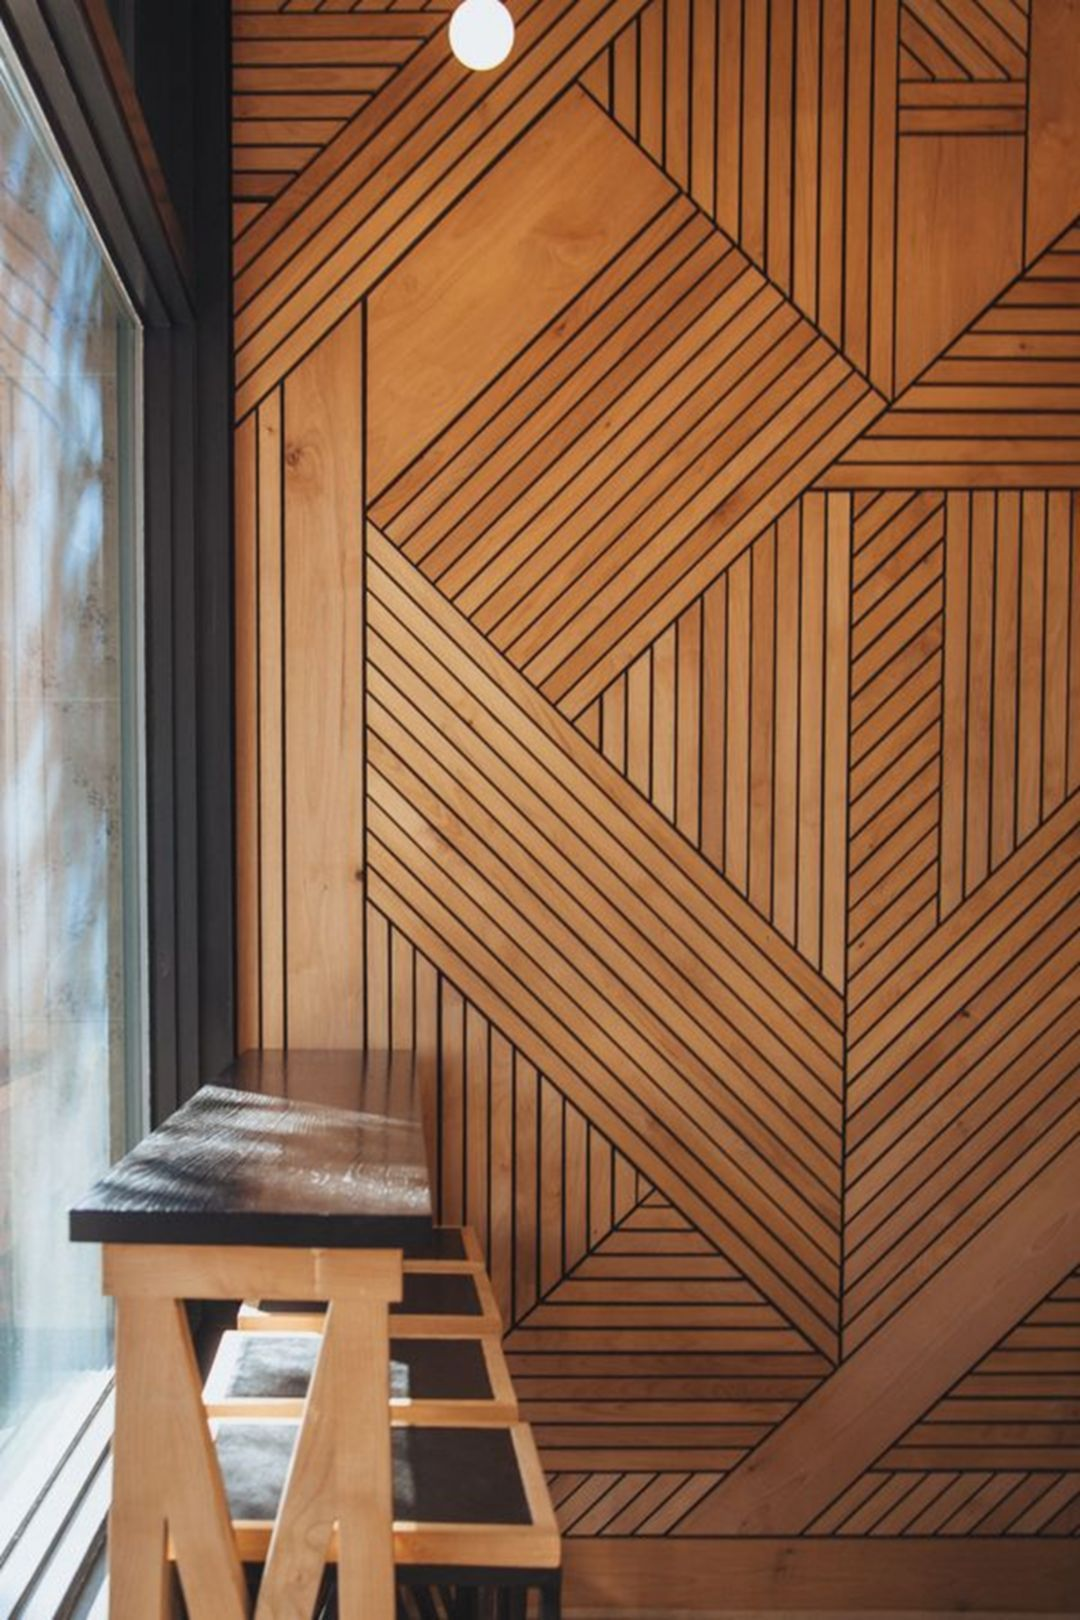 25 Amazing Wood Wall Covering Ideas For Amazing Home Interior With Images Wooden Wall Panels Wood Wall Covering Interior Walls